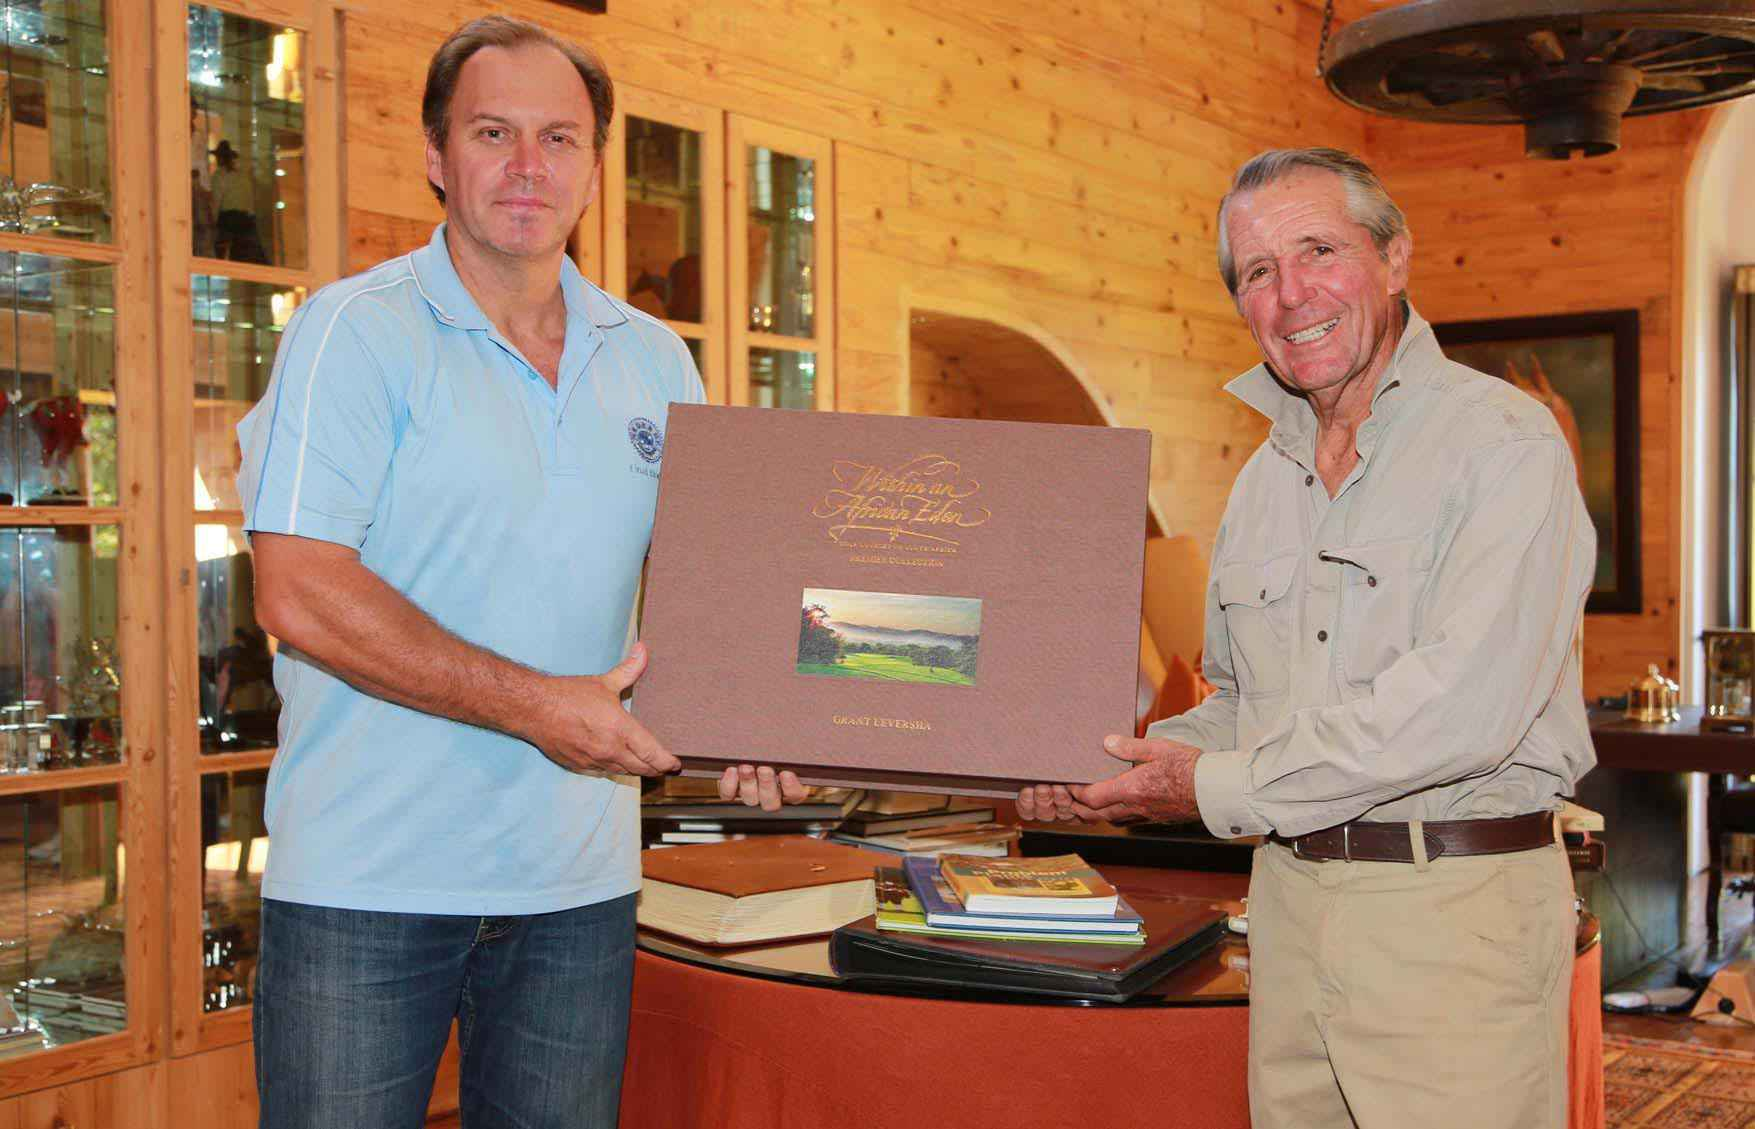 South African golf courses captured in rare book